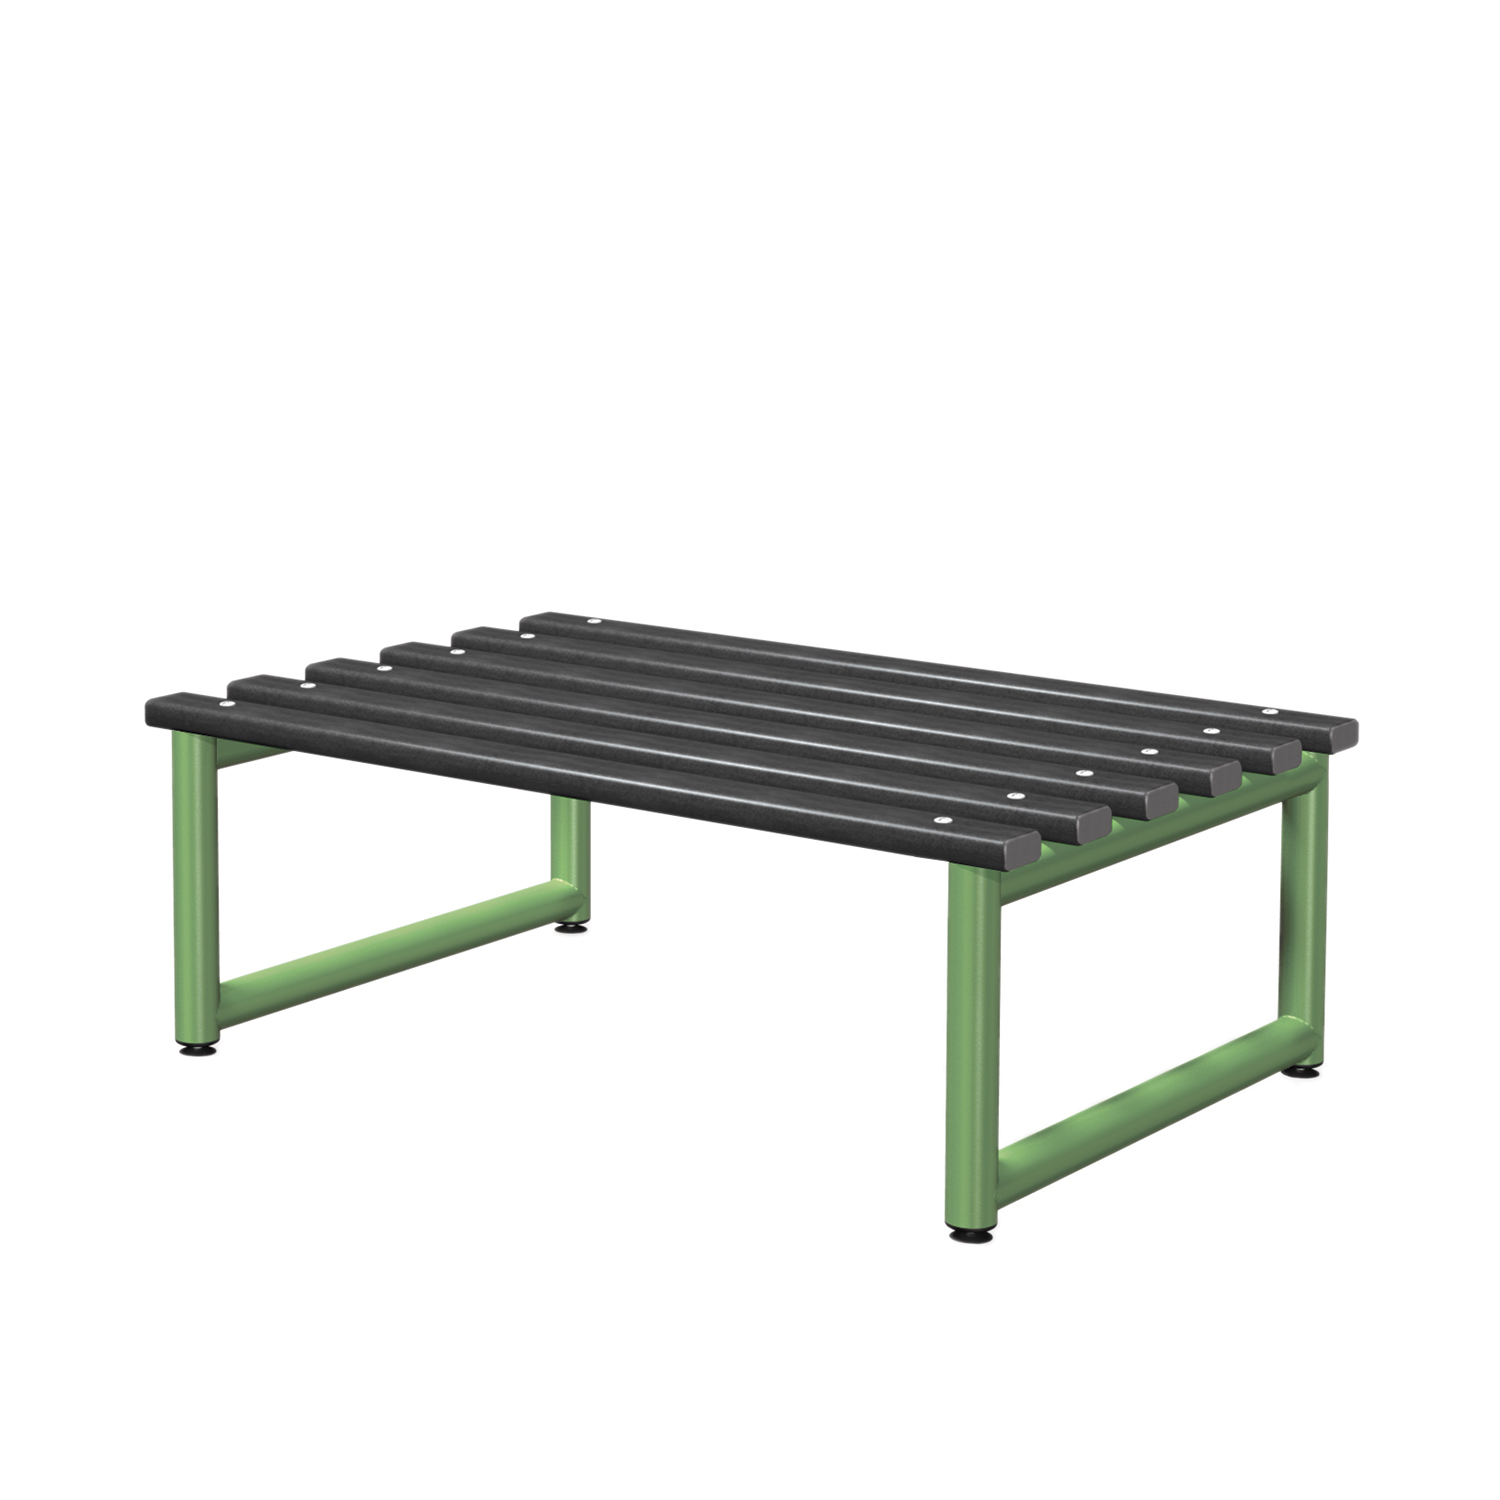 Probe cloakroom bench